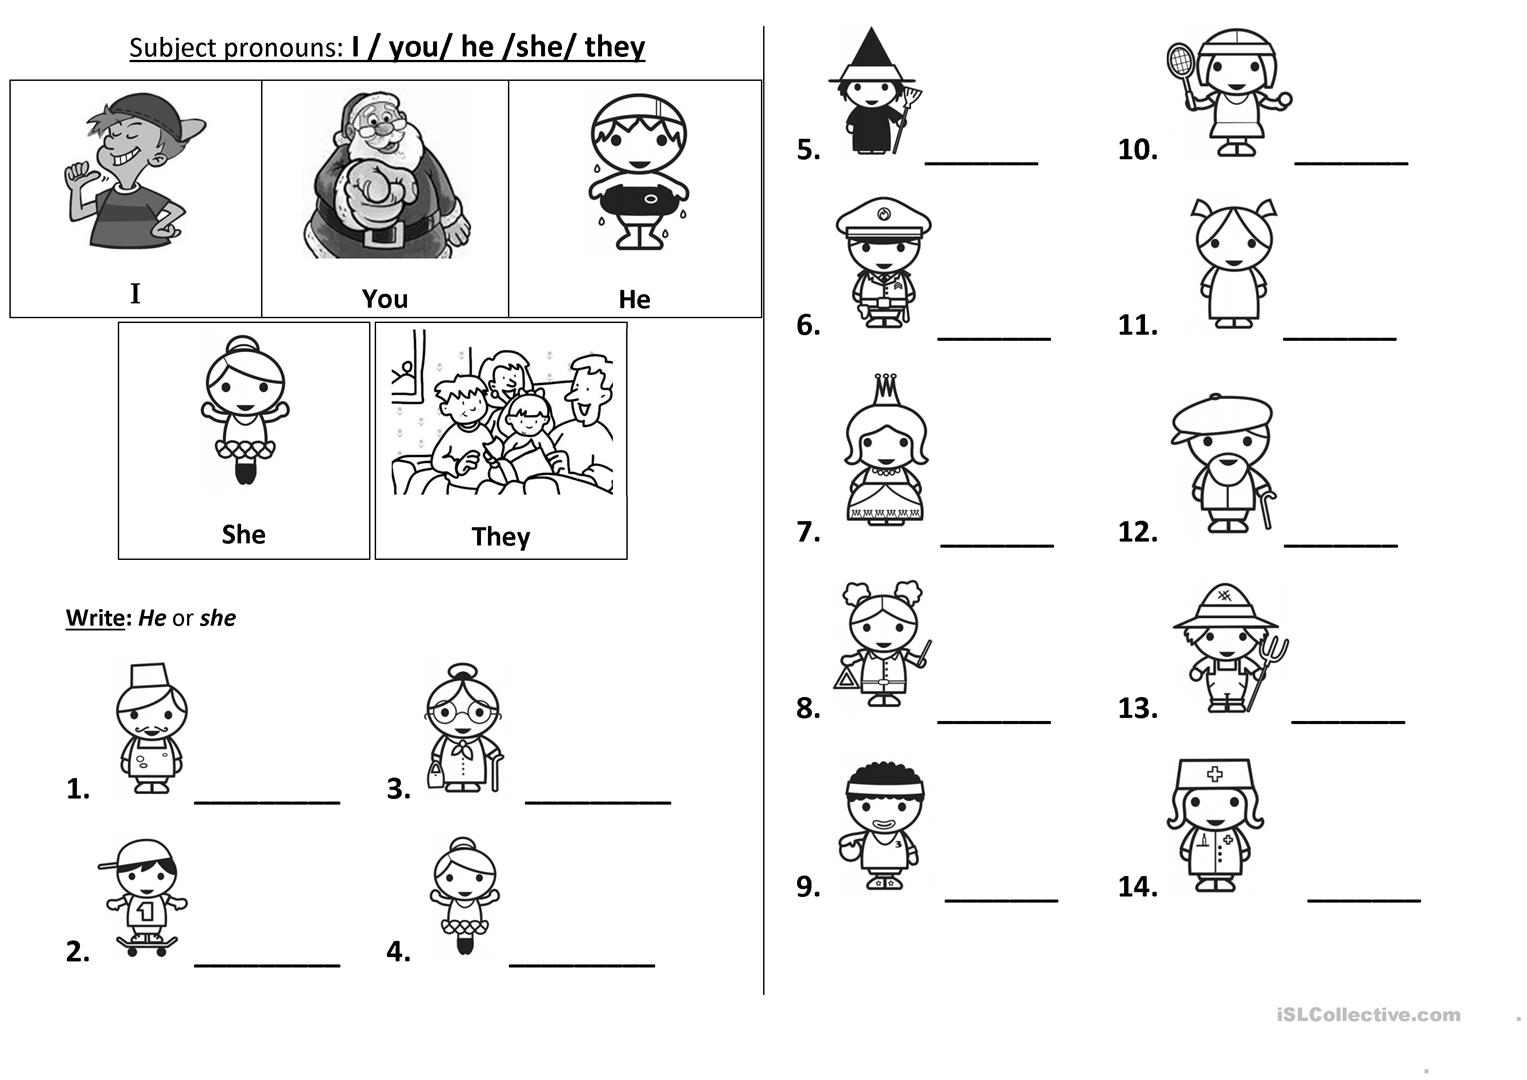 worksheet Esl Subject Pronouns Worksheet 71 free esl subject pronouns worksheets pronouns